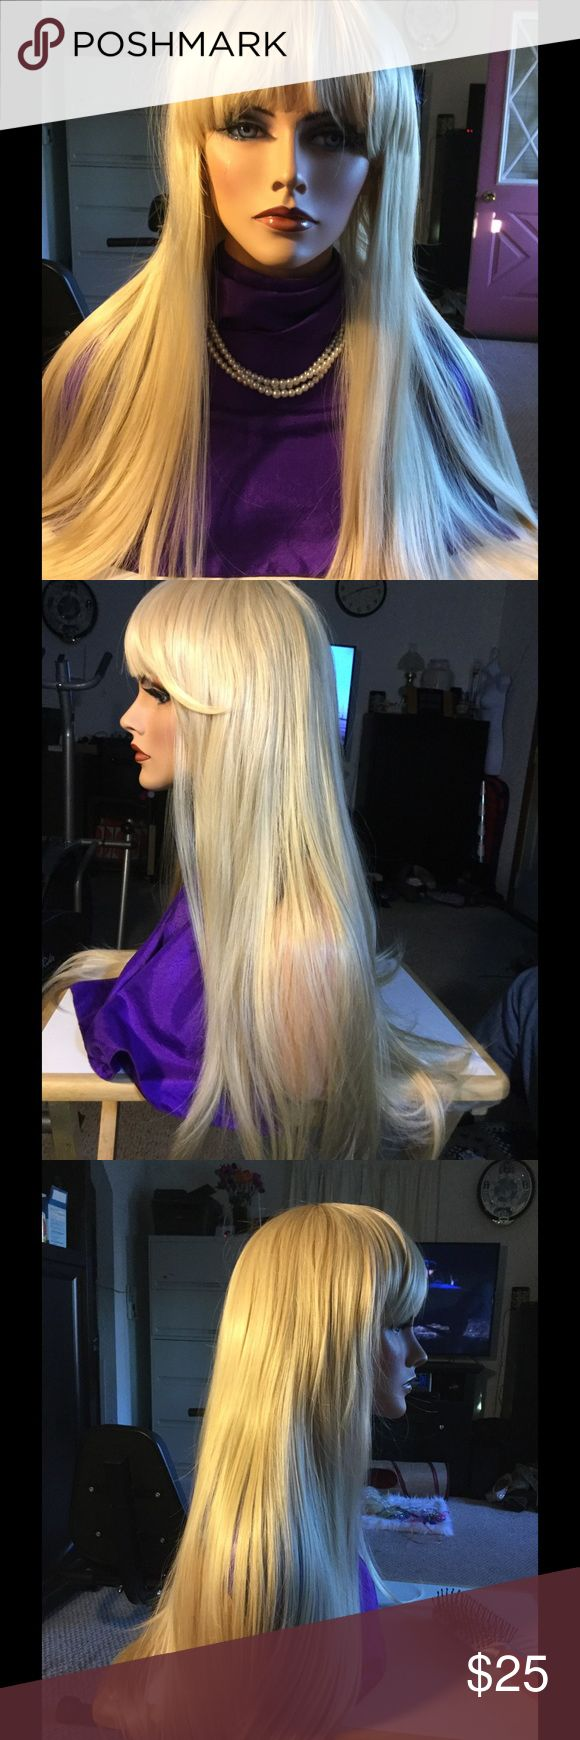 Long blond wig Synthetic Accessories Hair Accessories